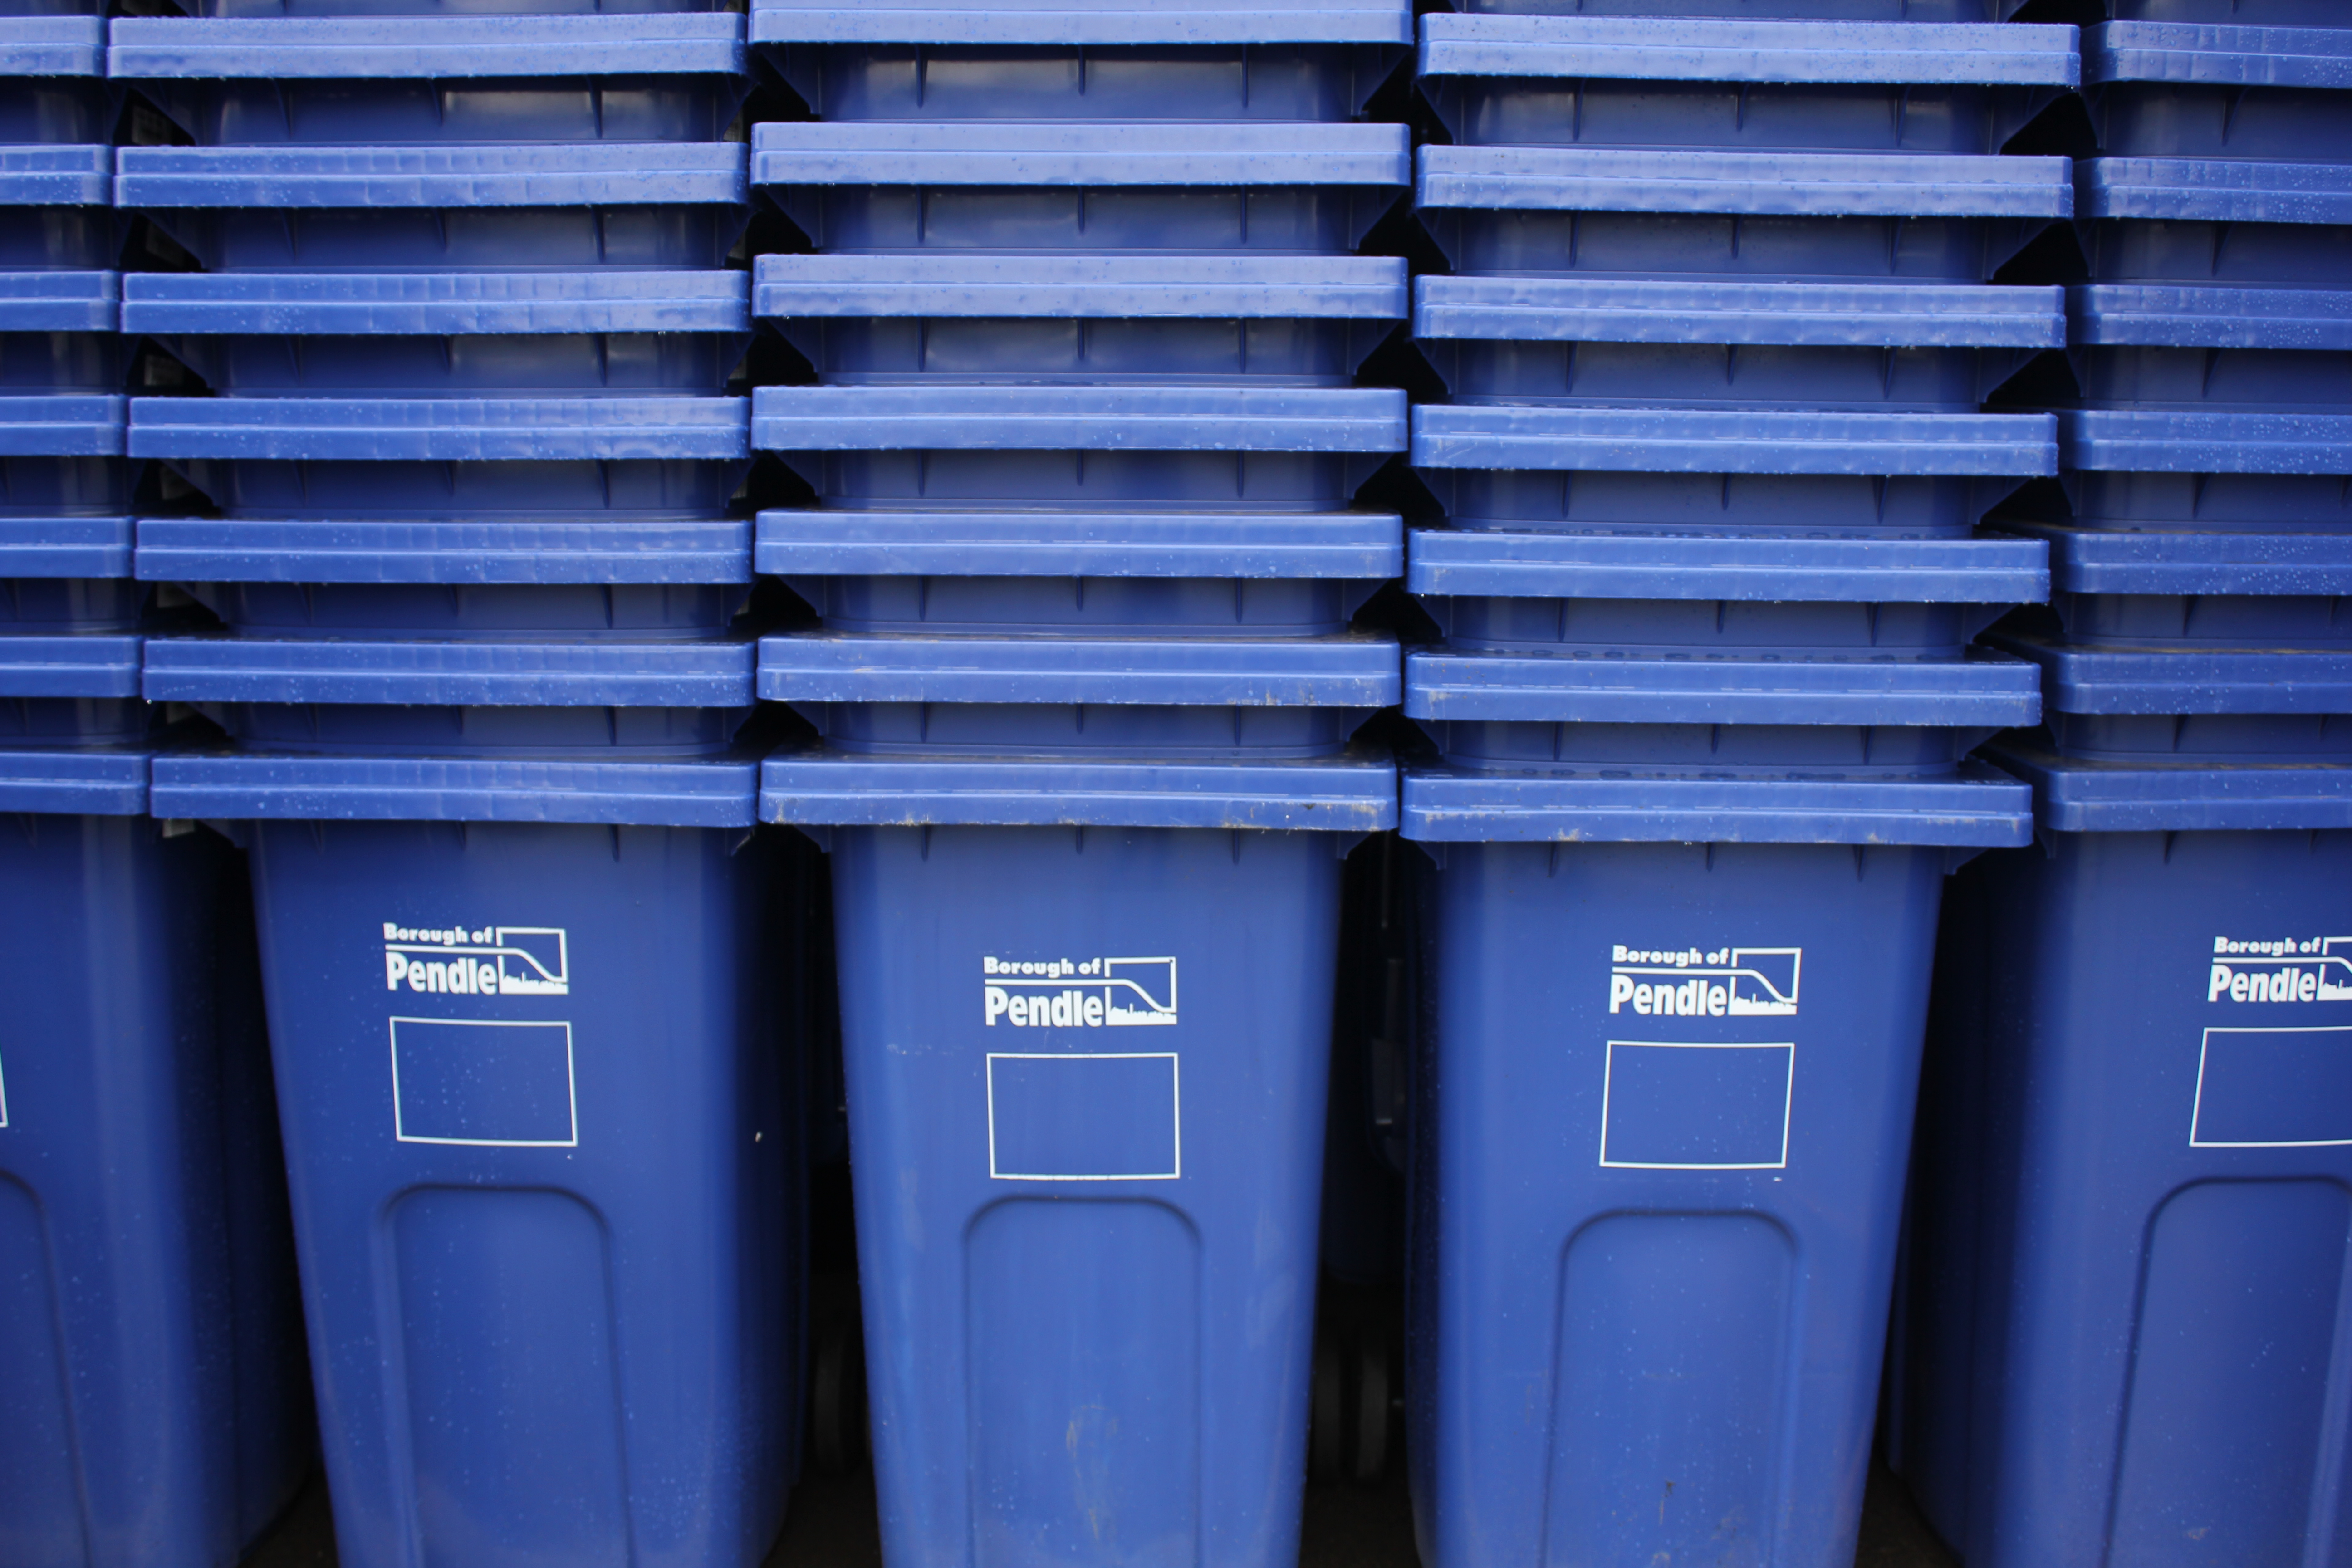 More blue bins for Pendle!